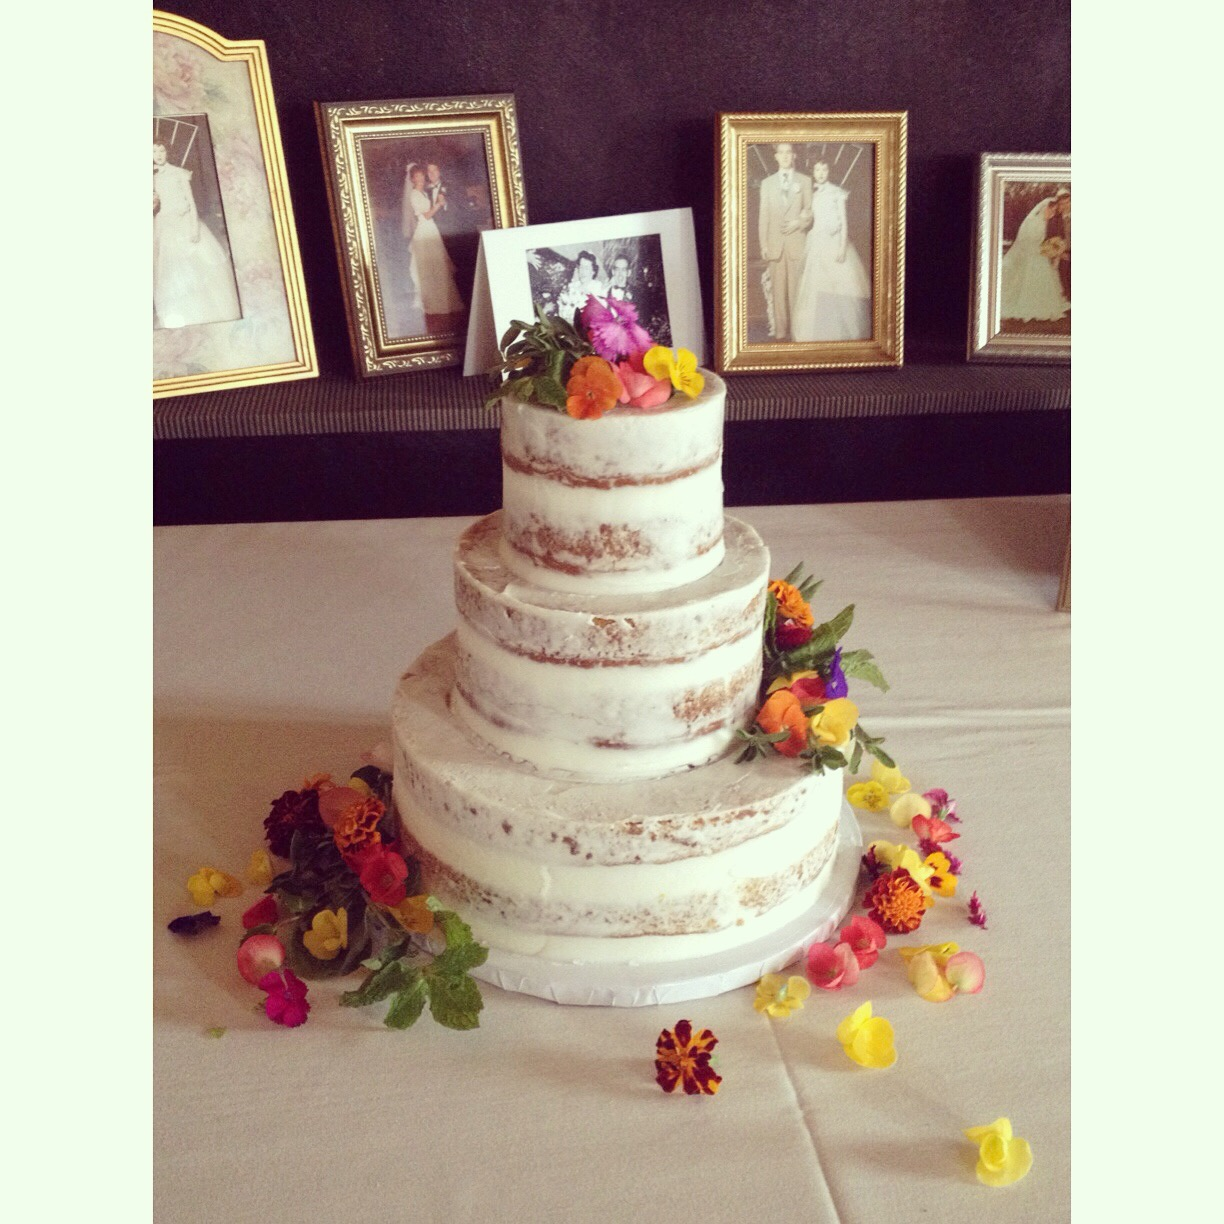 naked cake with edible live flowers